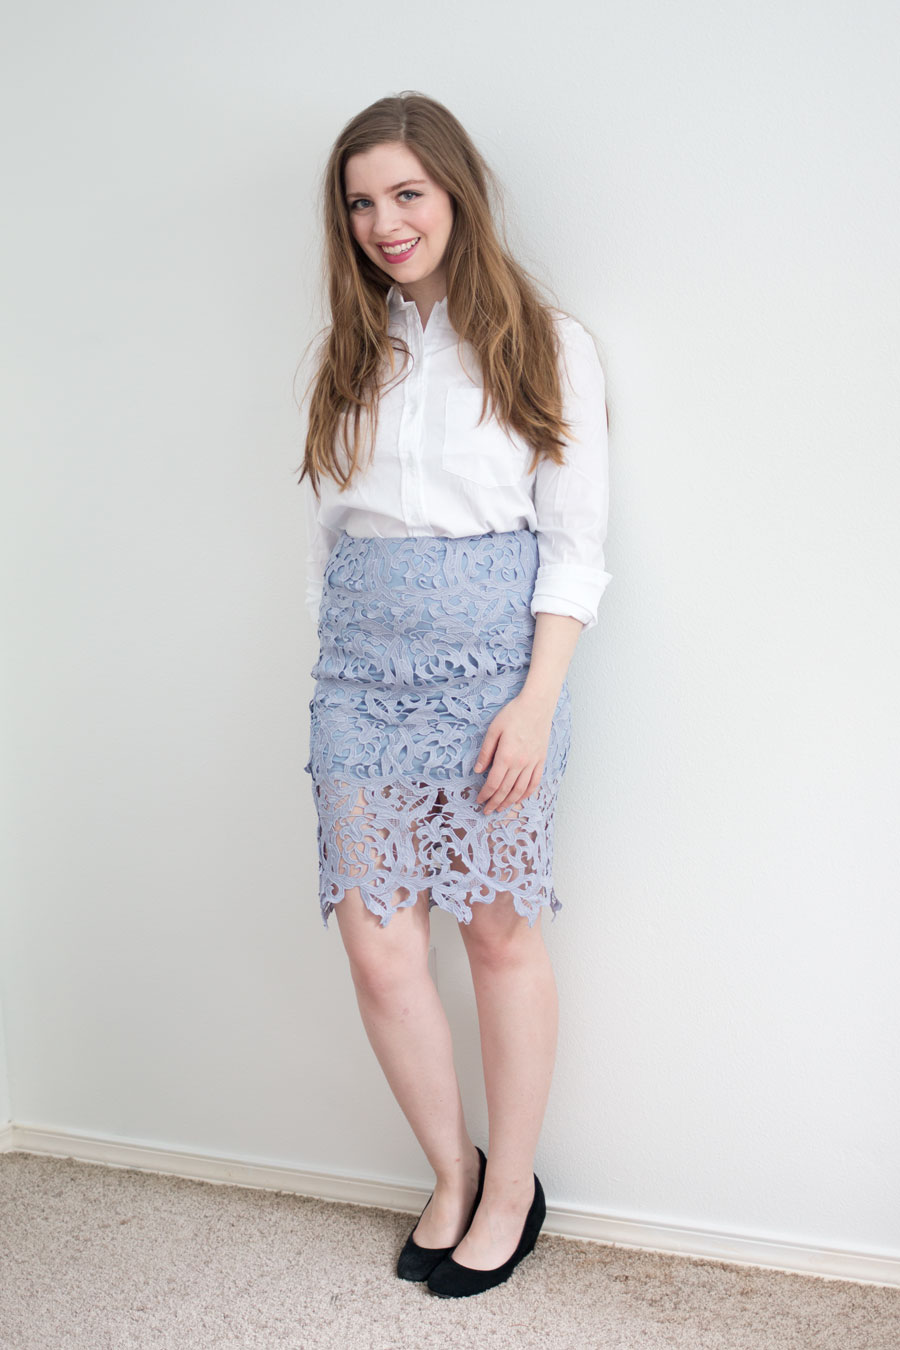 Daily Look Elite Box Review:  Carlie Dattolo Button Down and Venetian Lace Skirt in Periwinkle / hellorigby seattle fashion blog